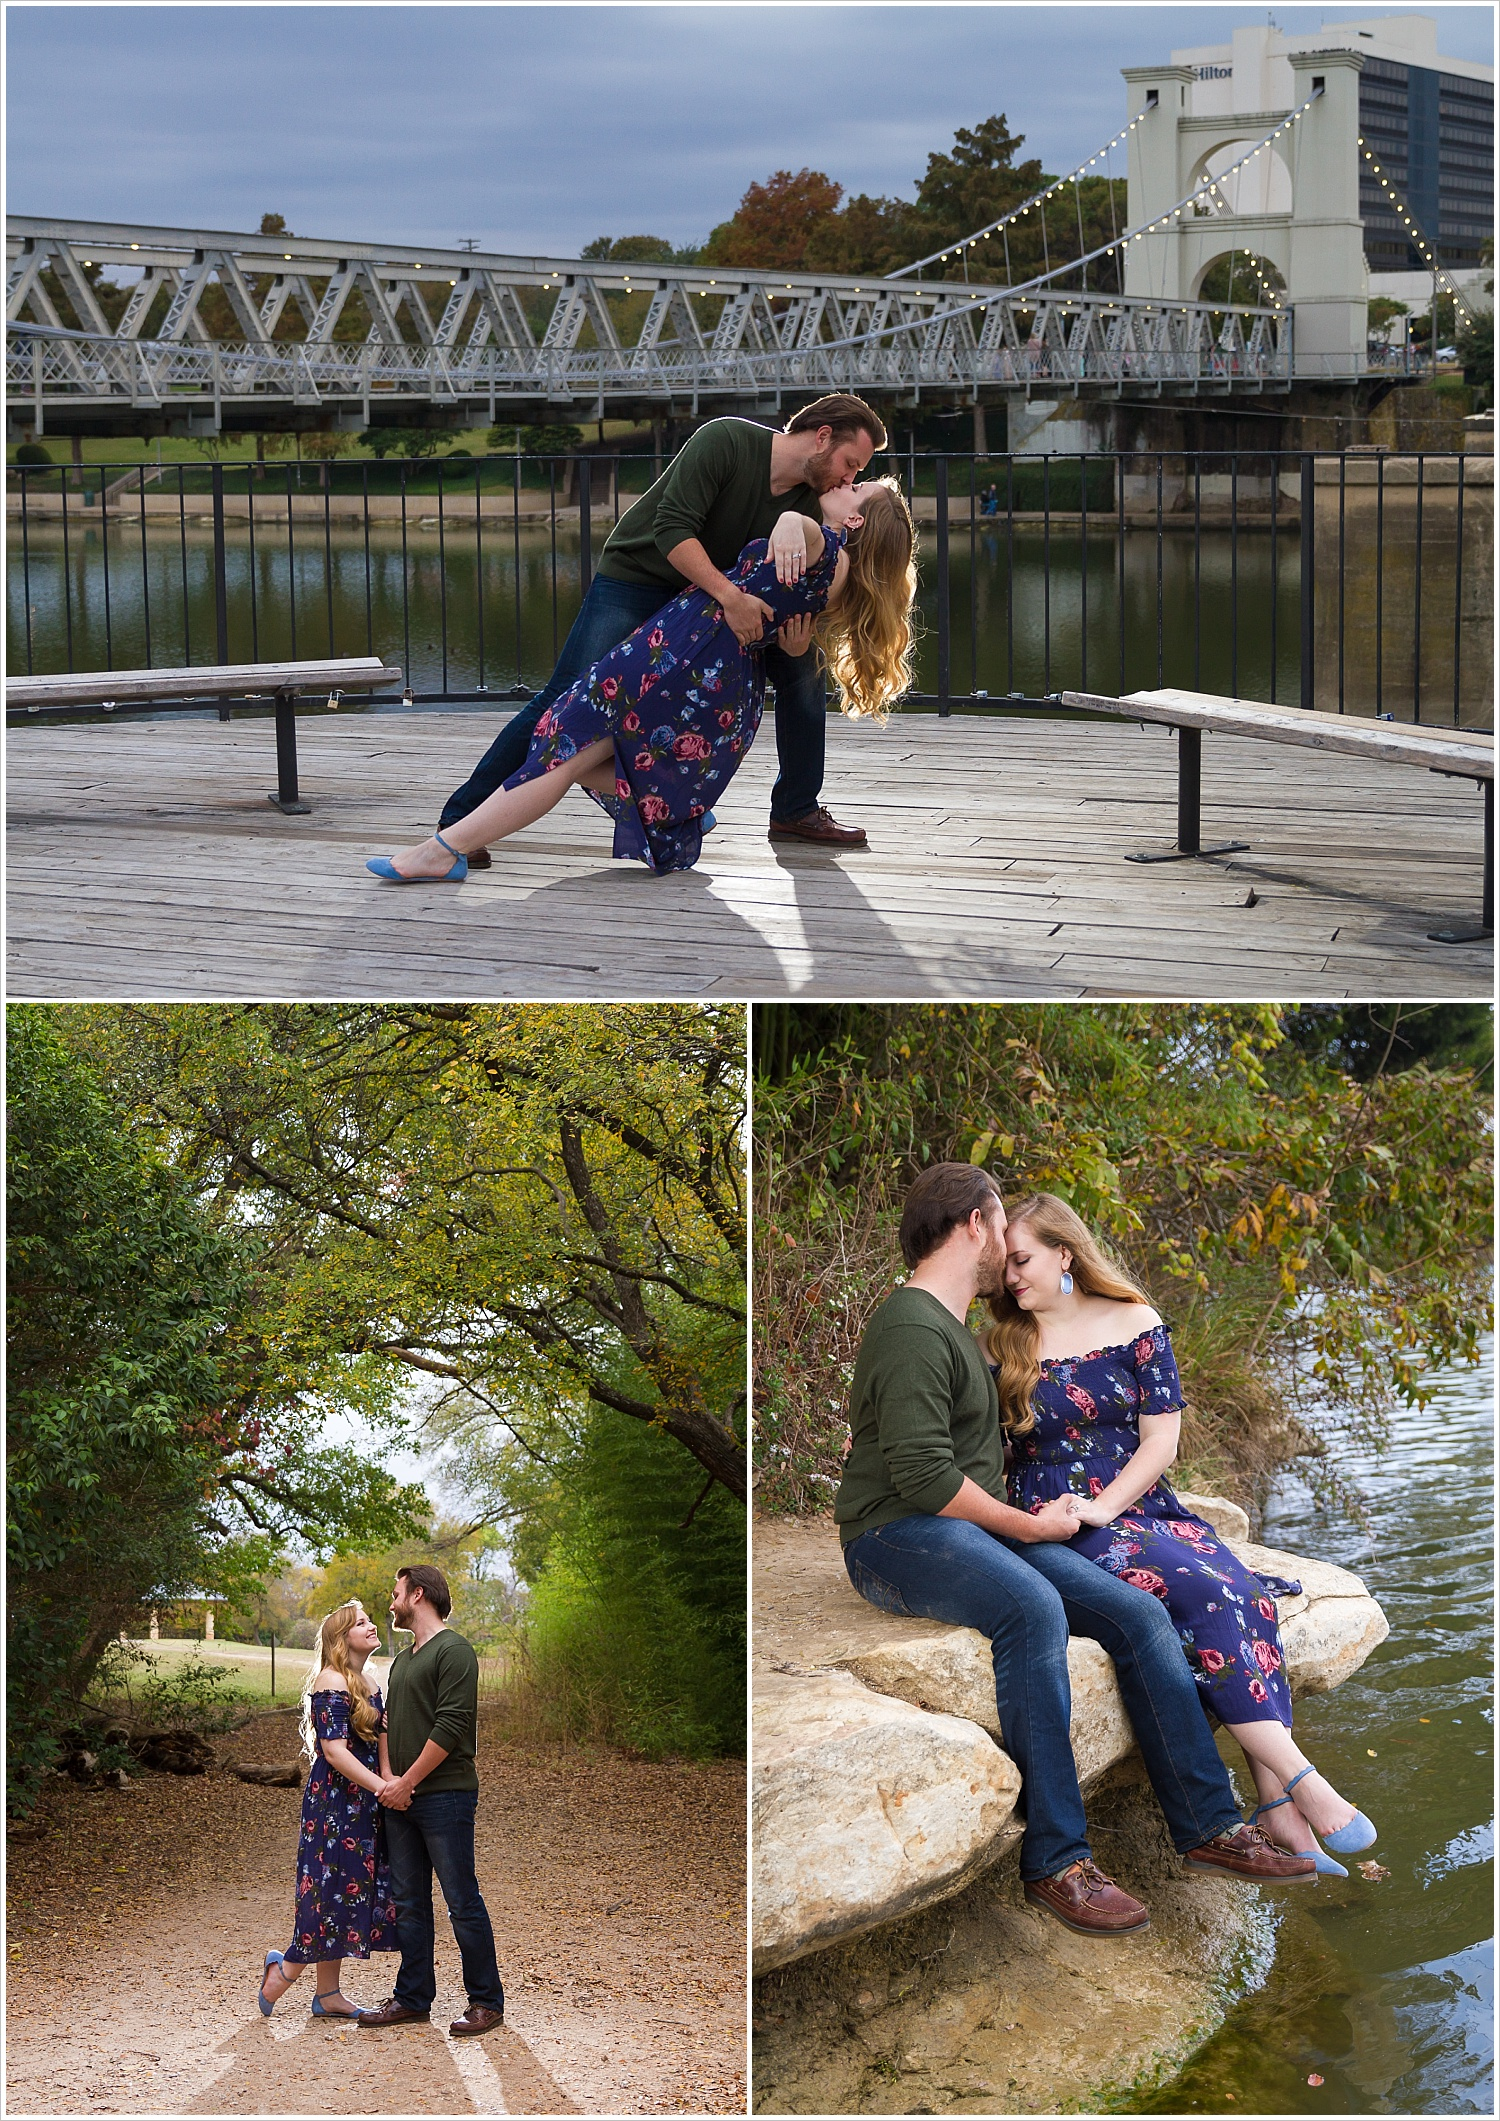 A man dips his fiance for a kiss with the Waco Suspension Bridge behind them during their engagement photo session in Waco, Tx - Jason & Melaina Photography - www.jasonandmelaina.com